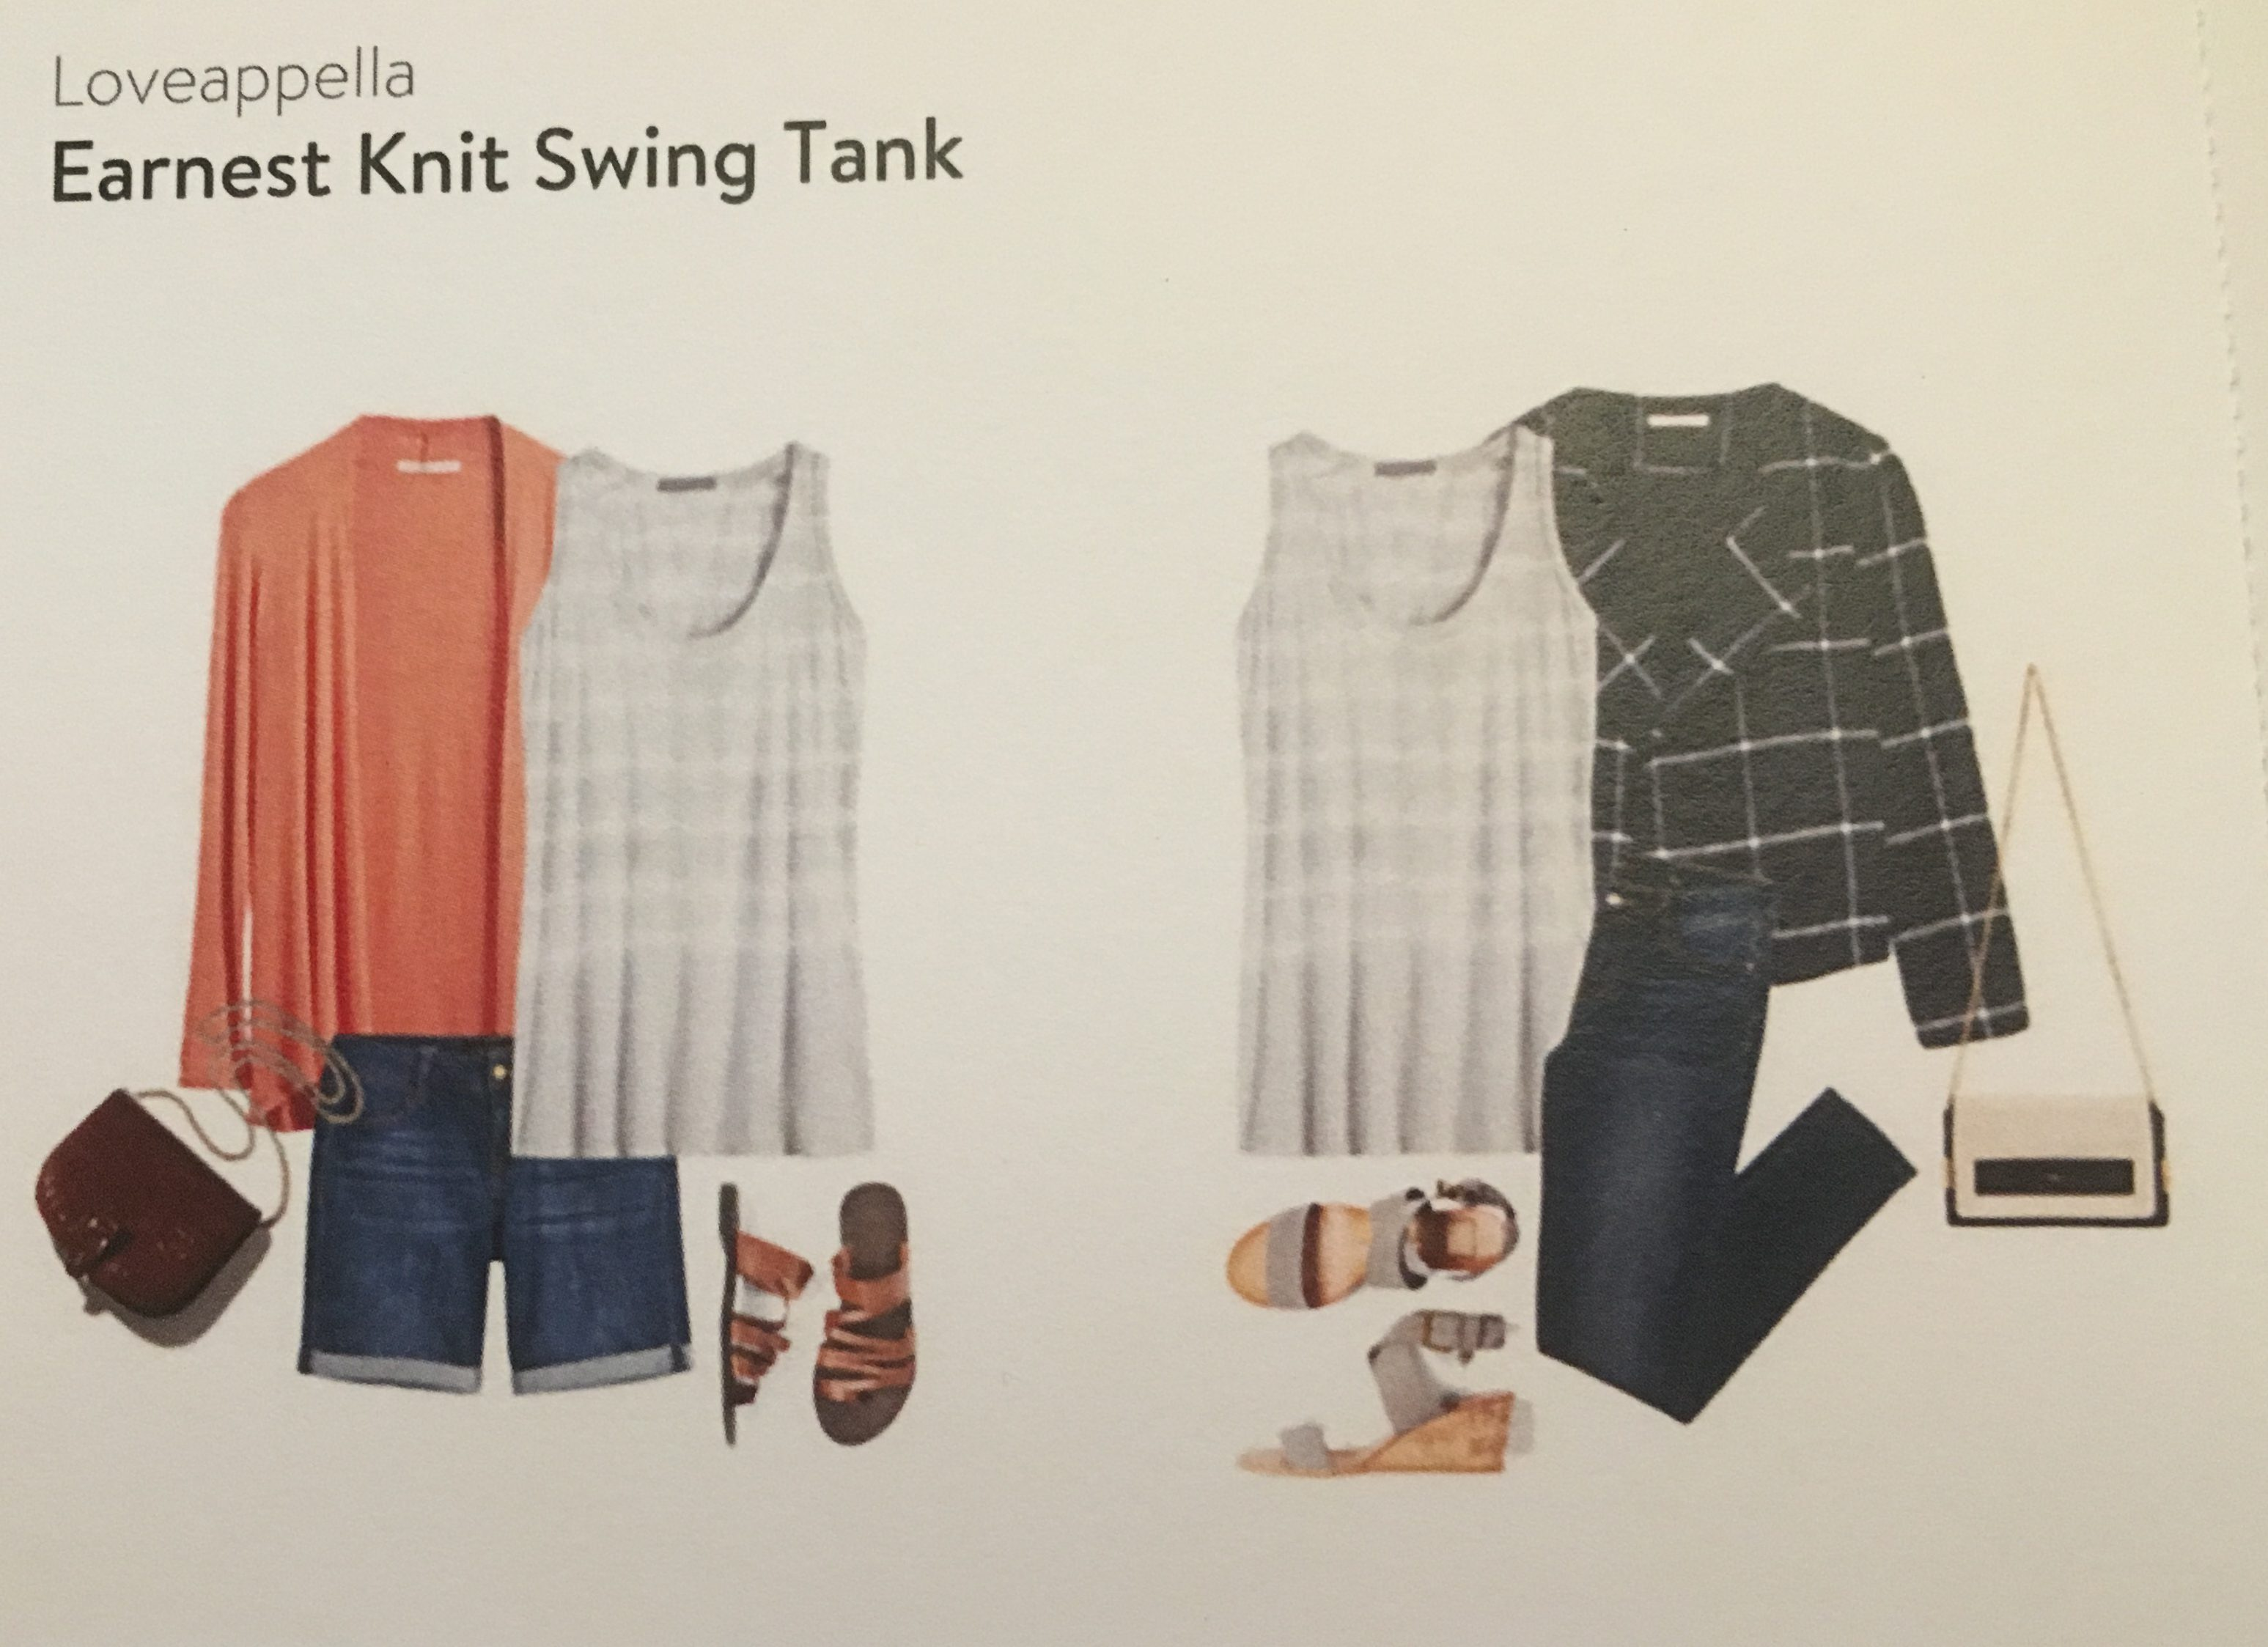 Loveappella Earnest Knot Swing Tank suggestions